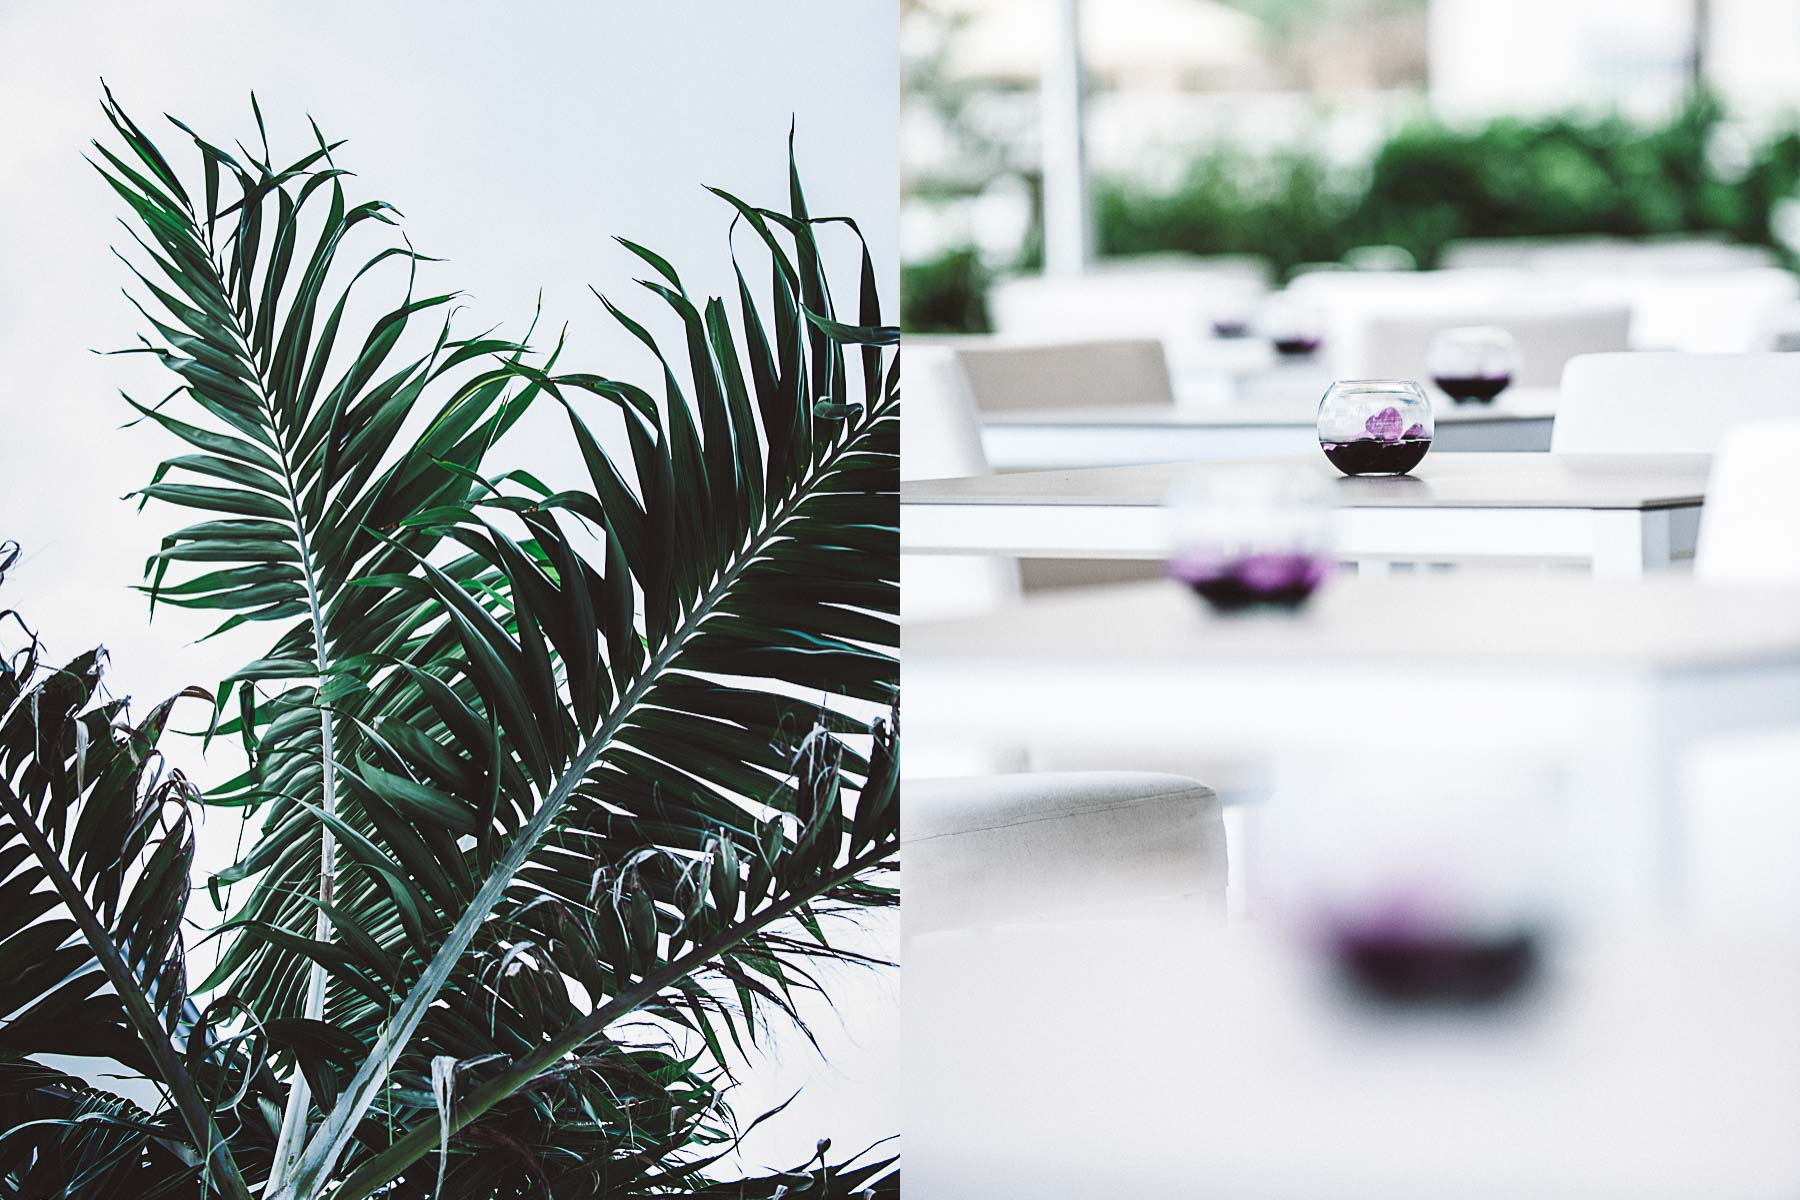 Palm trees swaying and lovely floral details on the outside patio.